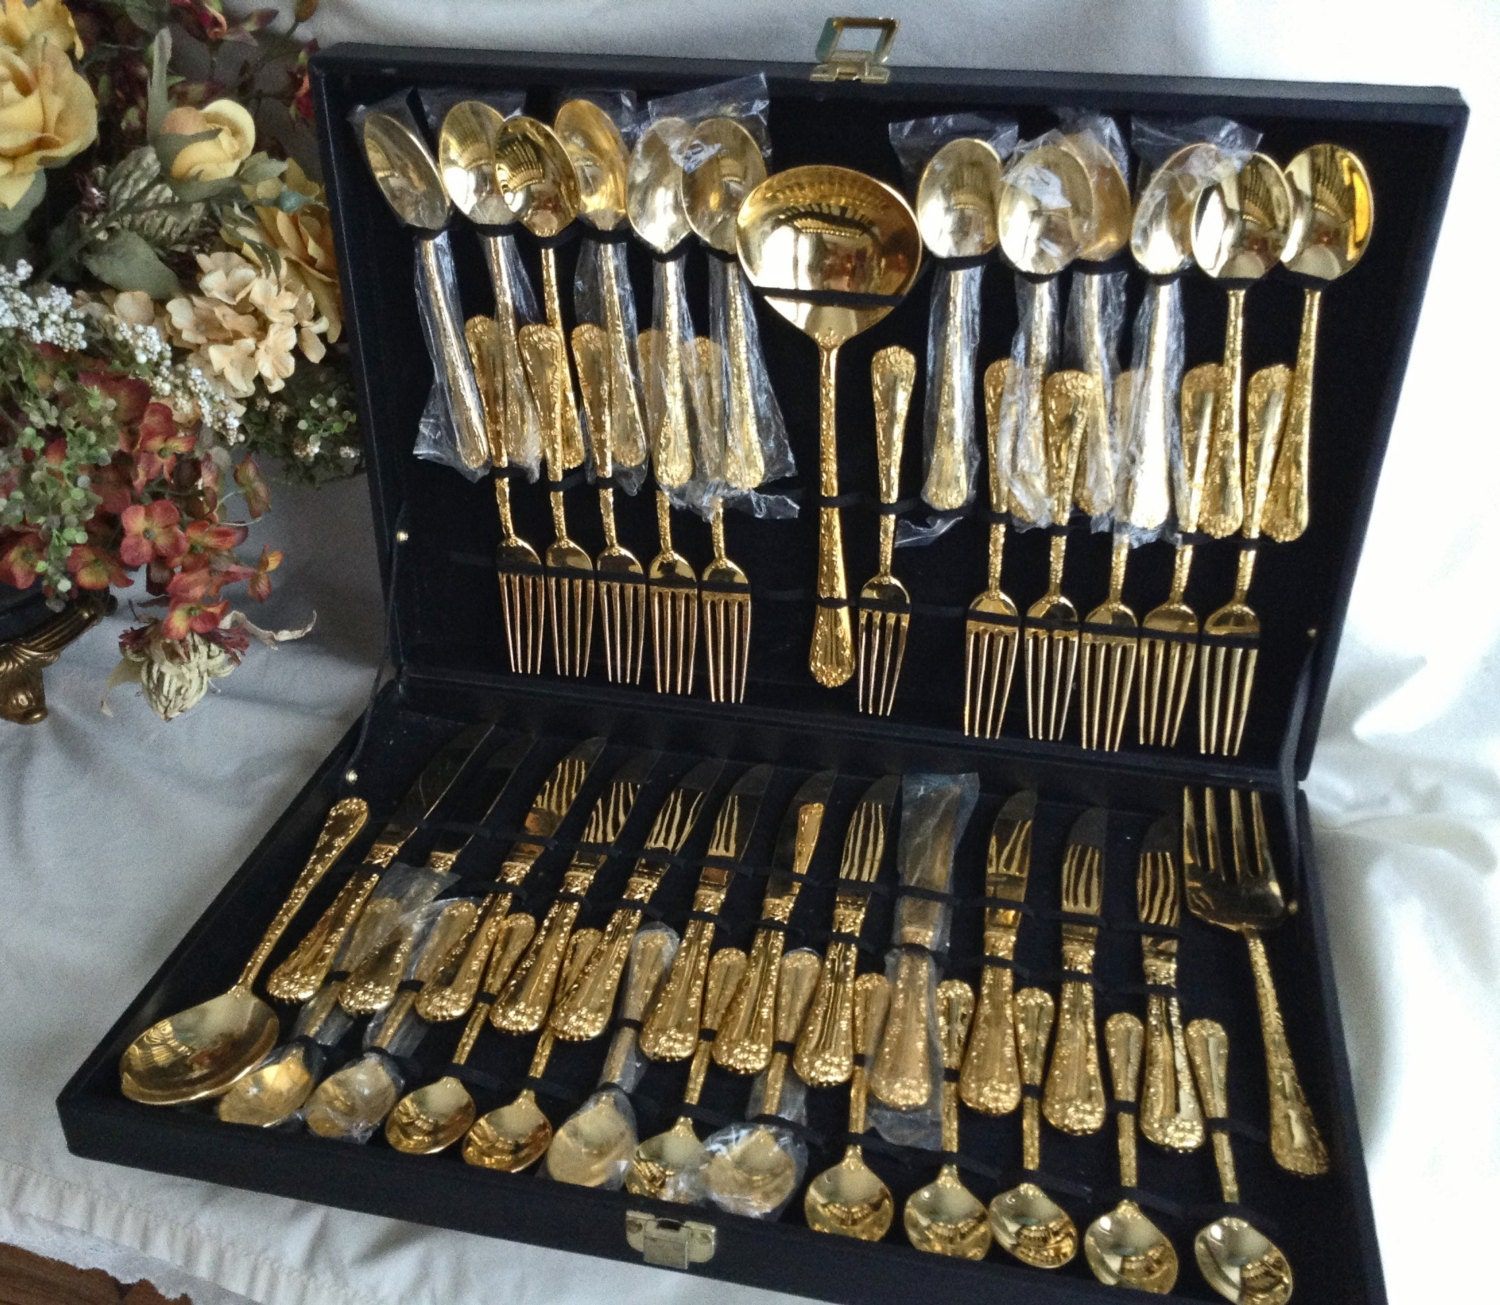 51 Pc Gold Flatware With Case Wm Rogers Amp Sons By